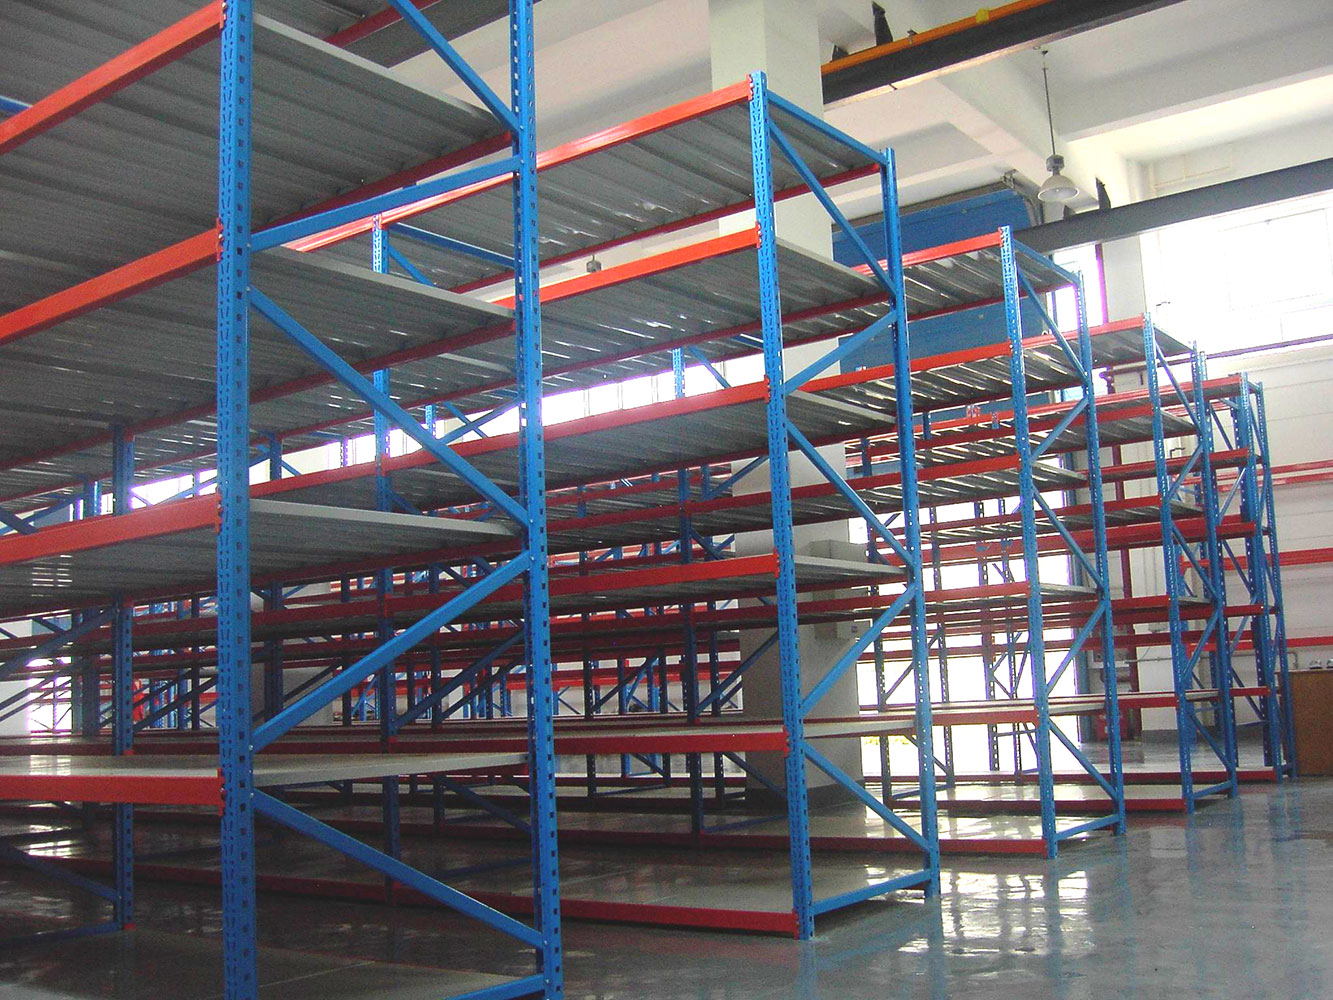 With beam Load 200-600kg longspan shelving